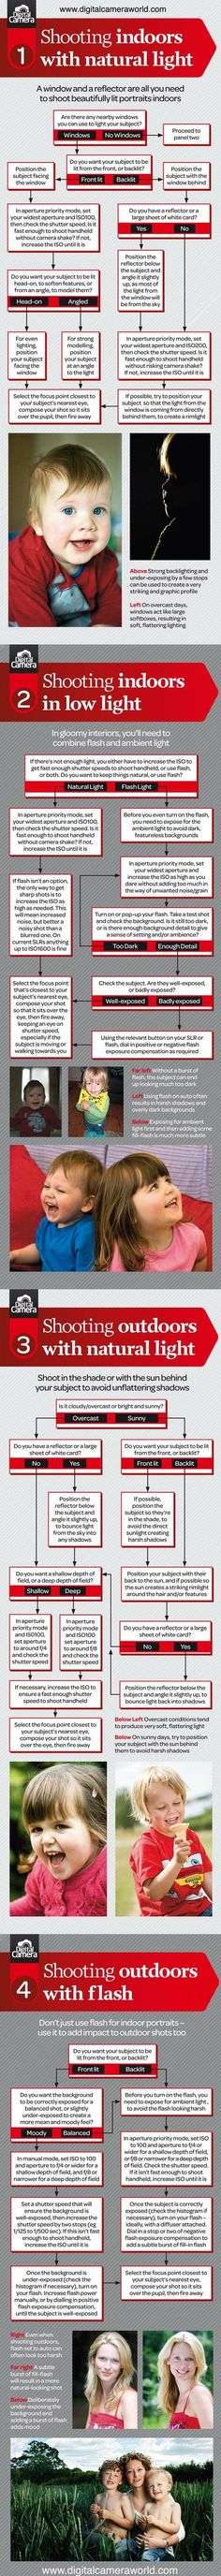 A great guide: Shooting indoors with natural light (infographic from digital world)